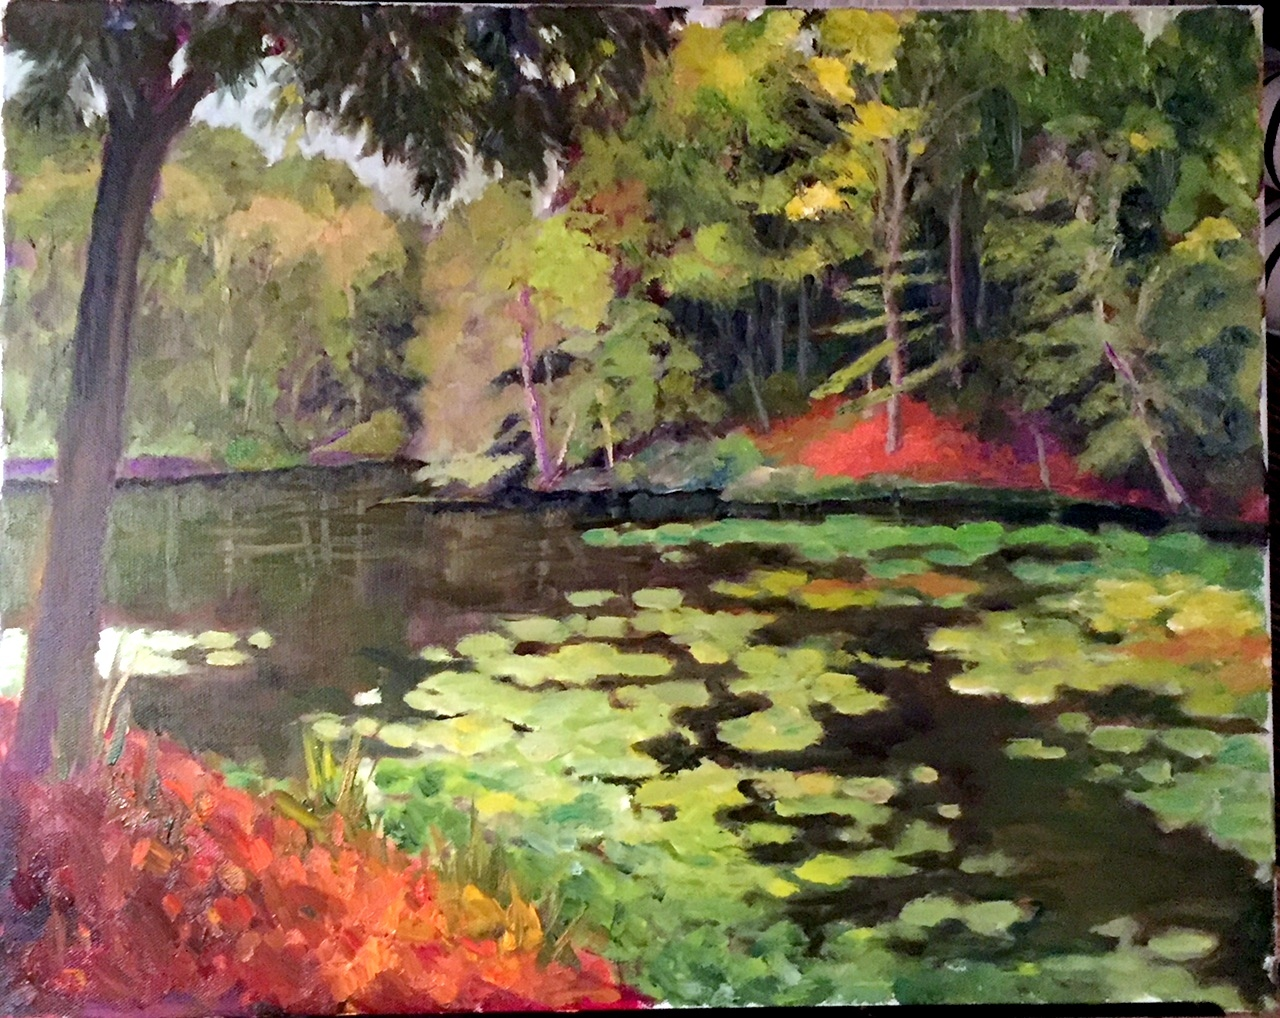 fine art painting, landscape, oil painting, African painting, Tangier River, waterway